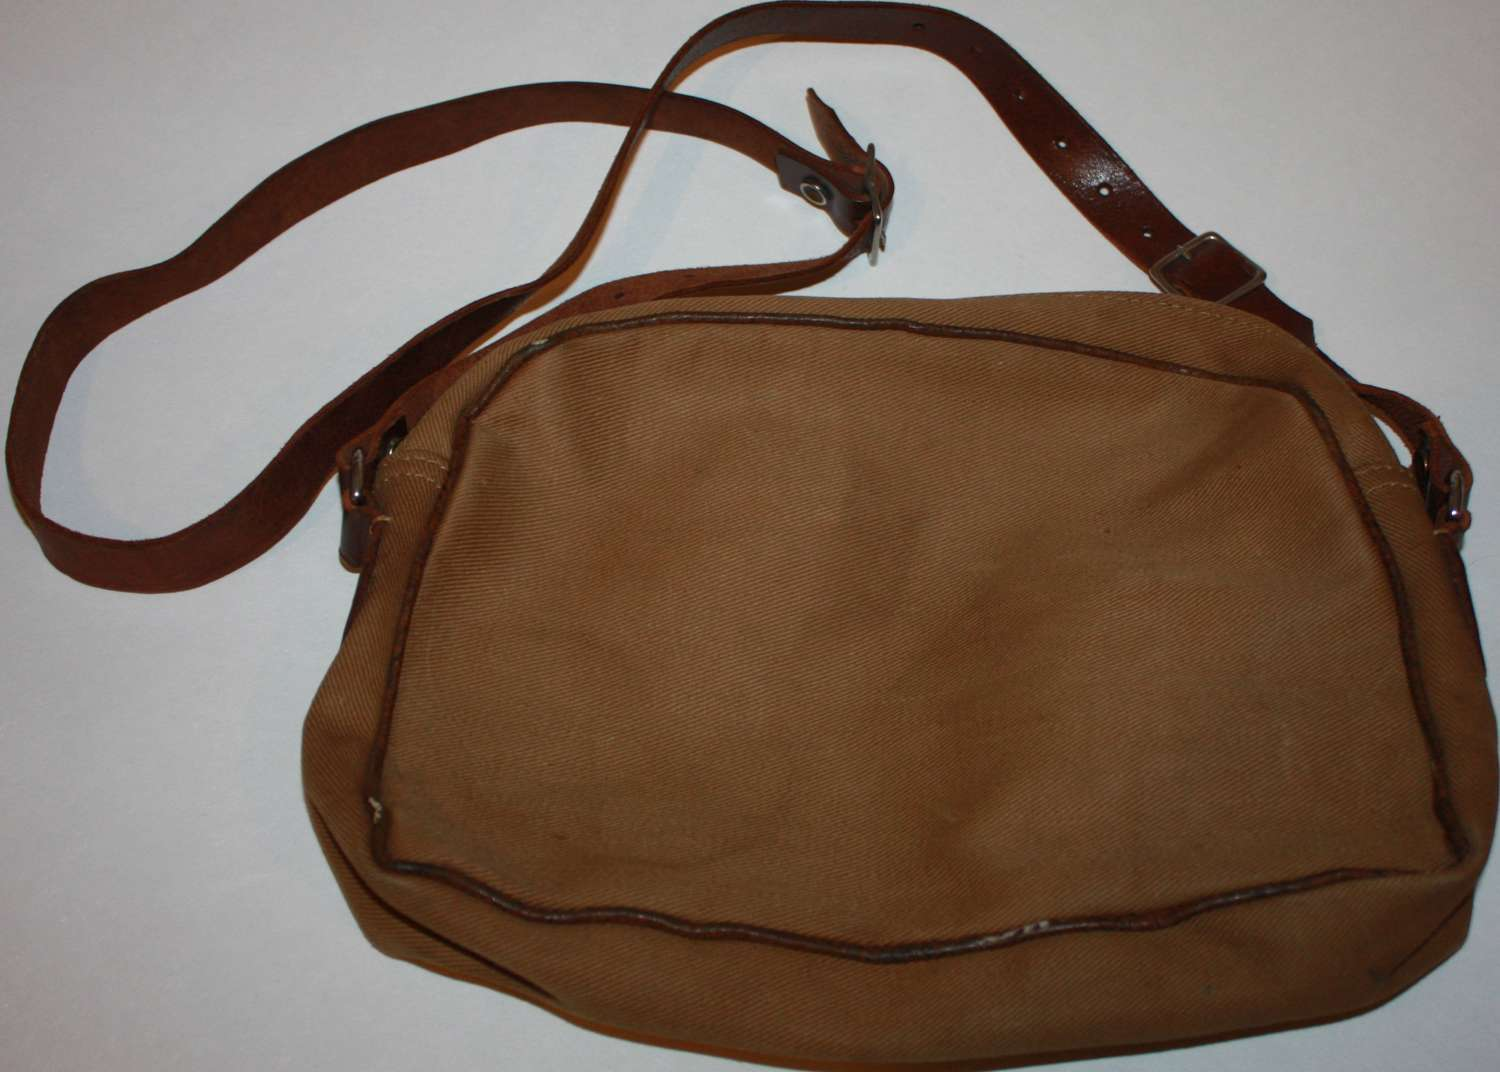 A 1945 DATED ATS HANDBAG IN VERY GOOD CONDITION